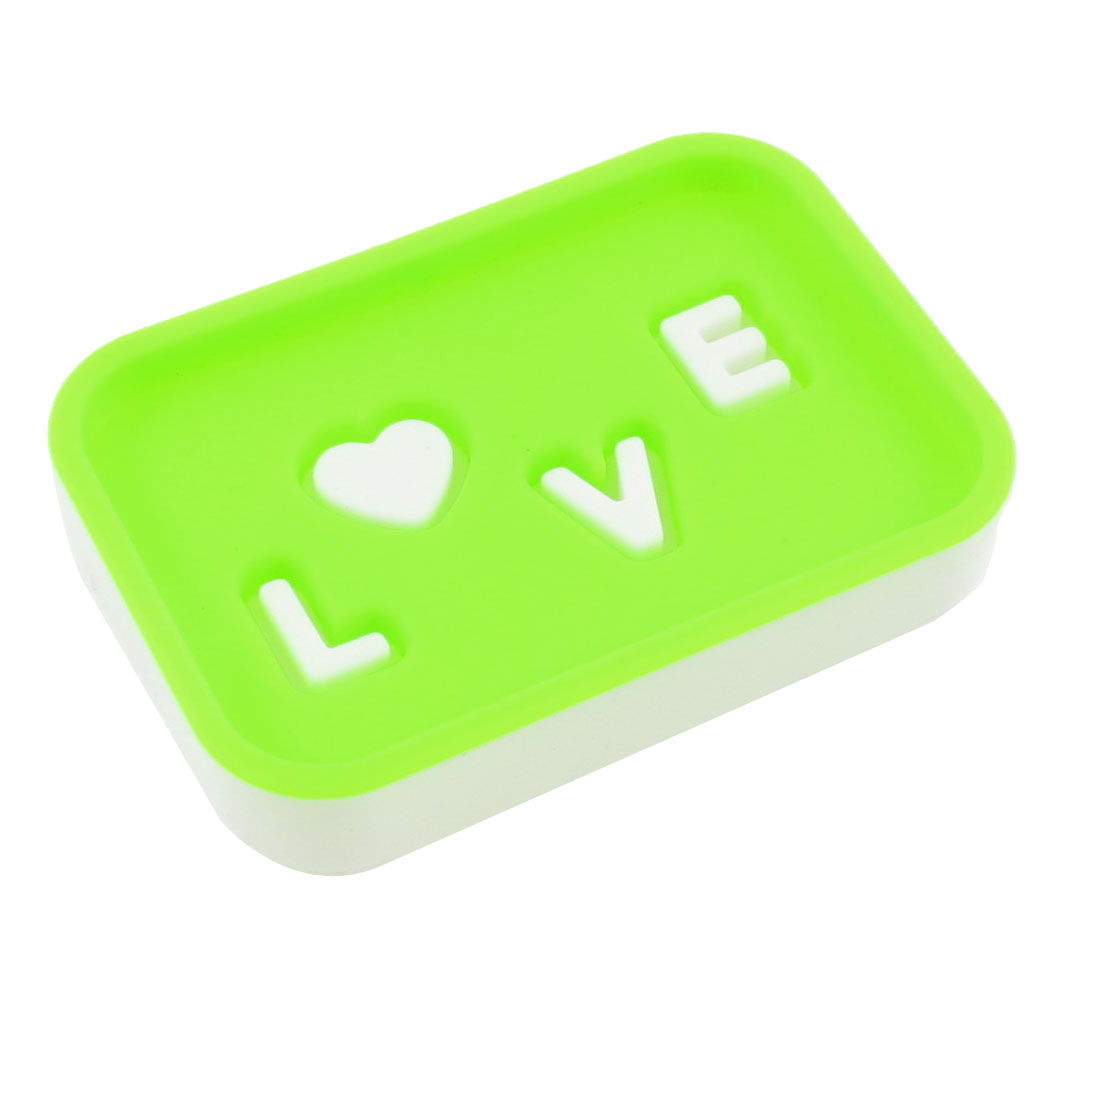 Double Layer Rectangle Green White Plastic Soap Box Case Storage Holder Dish